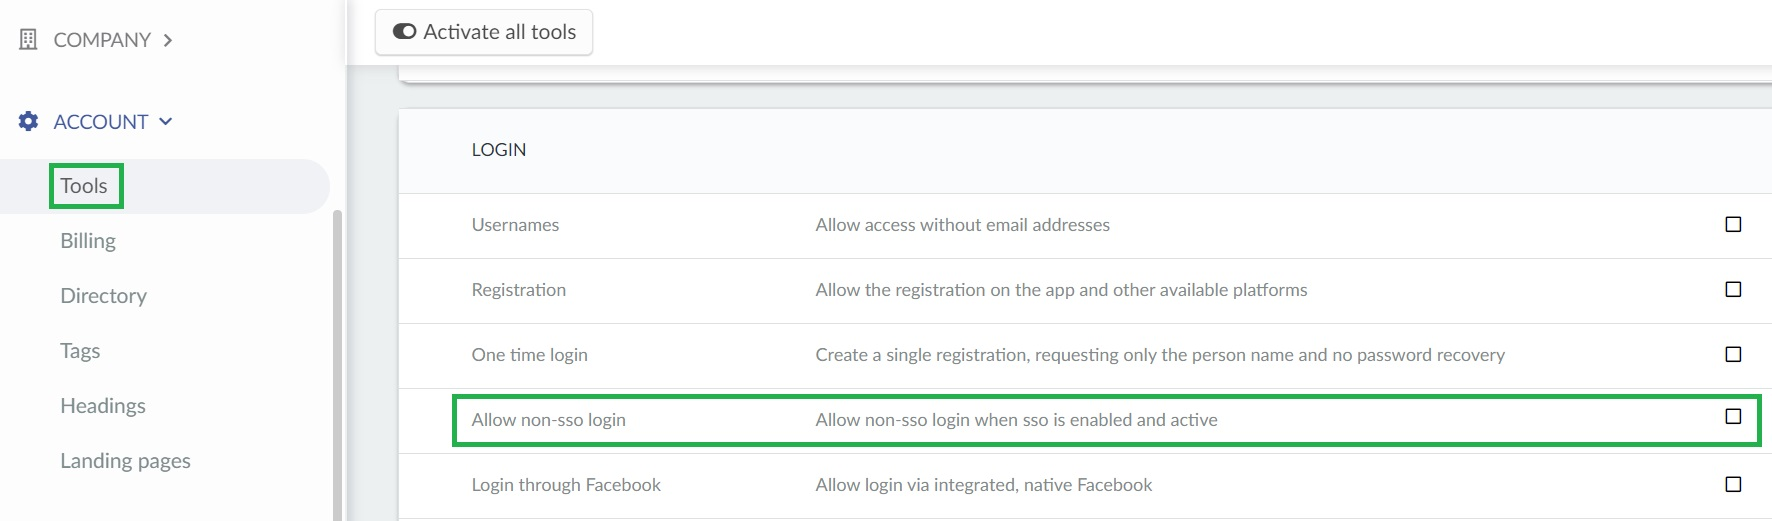 How to allow non sso login